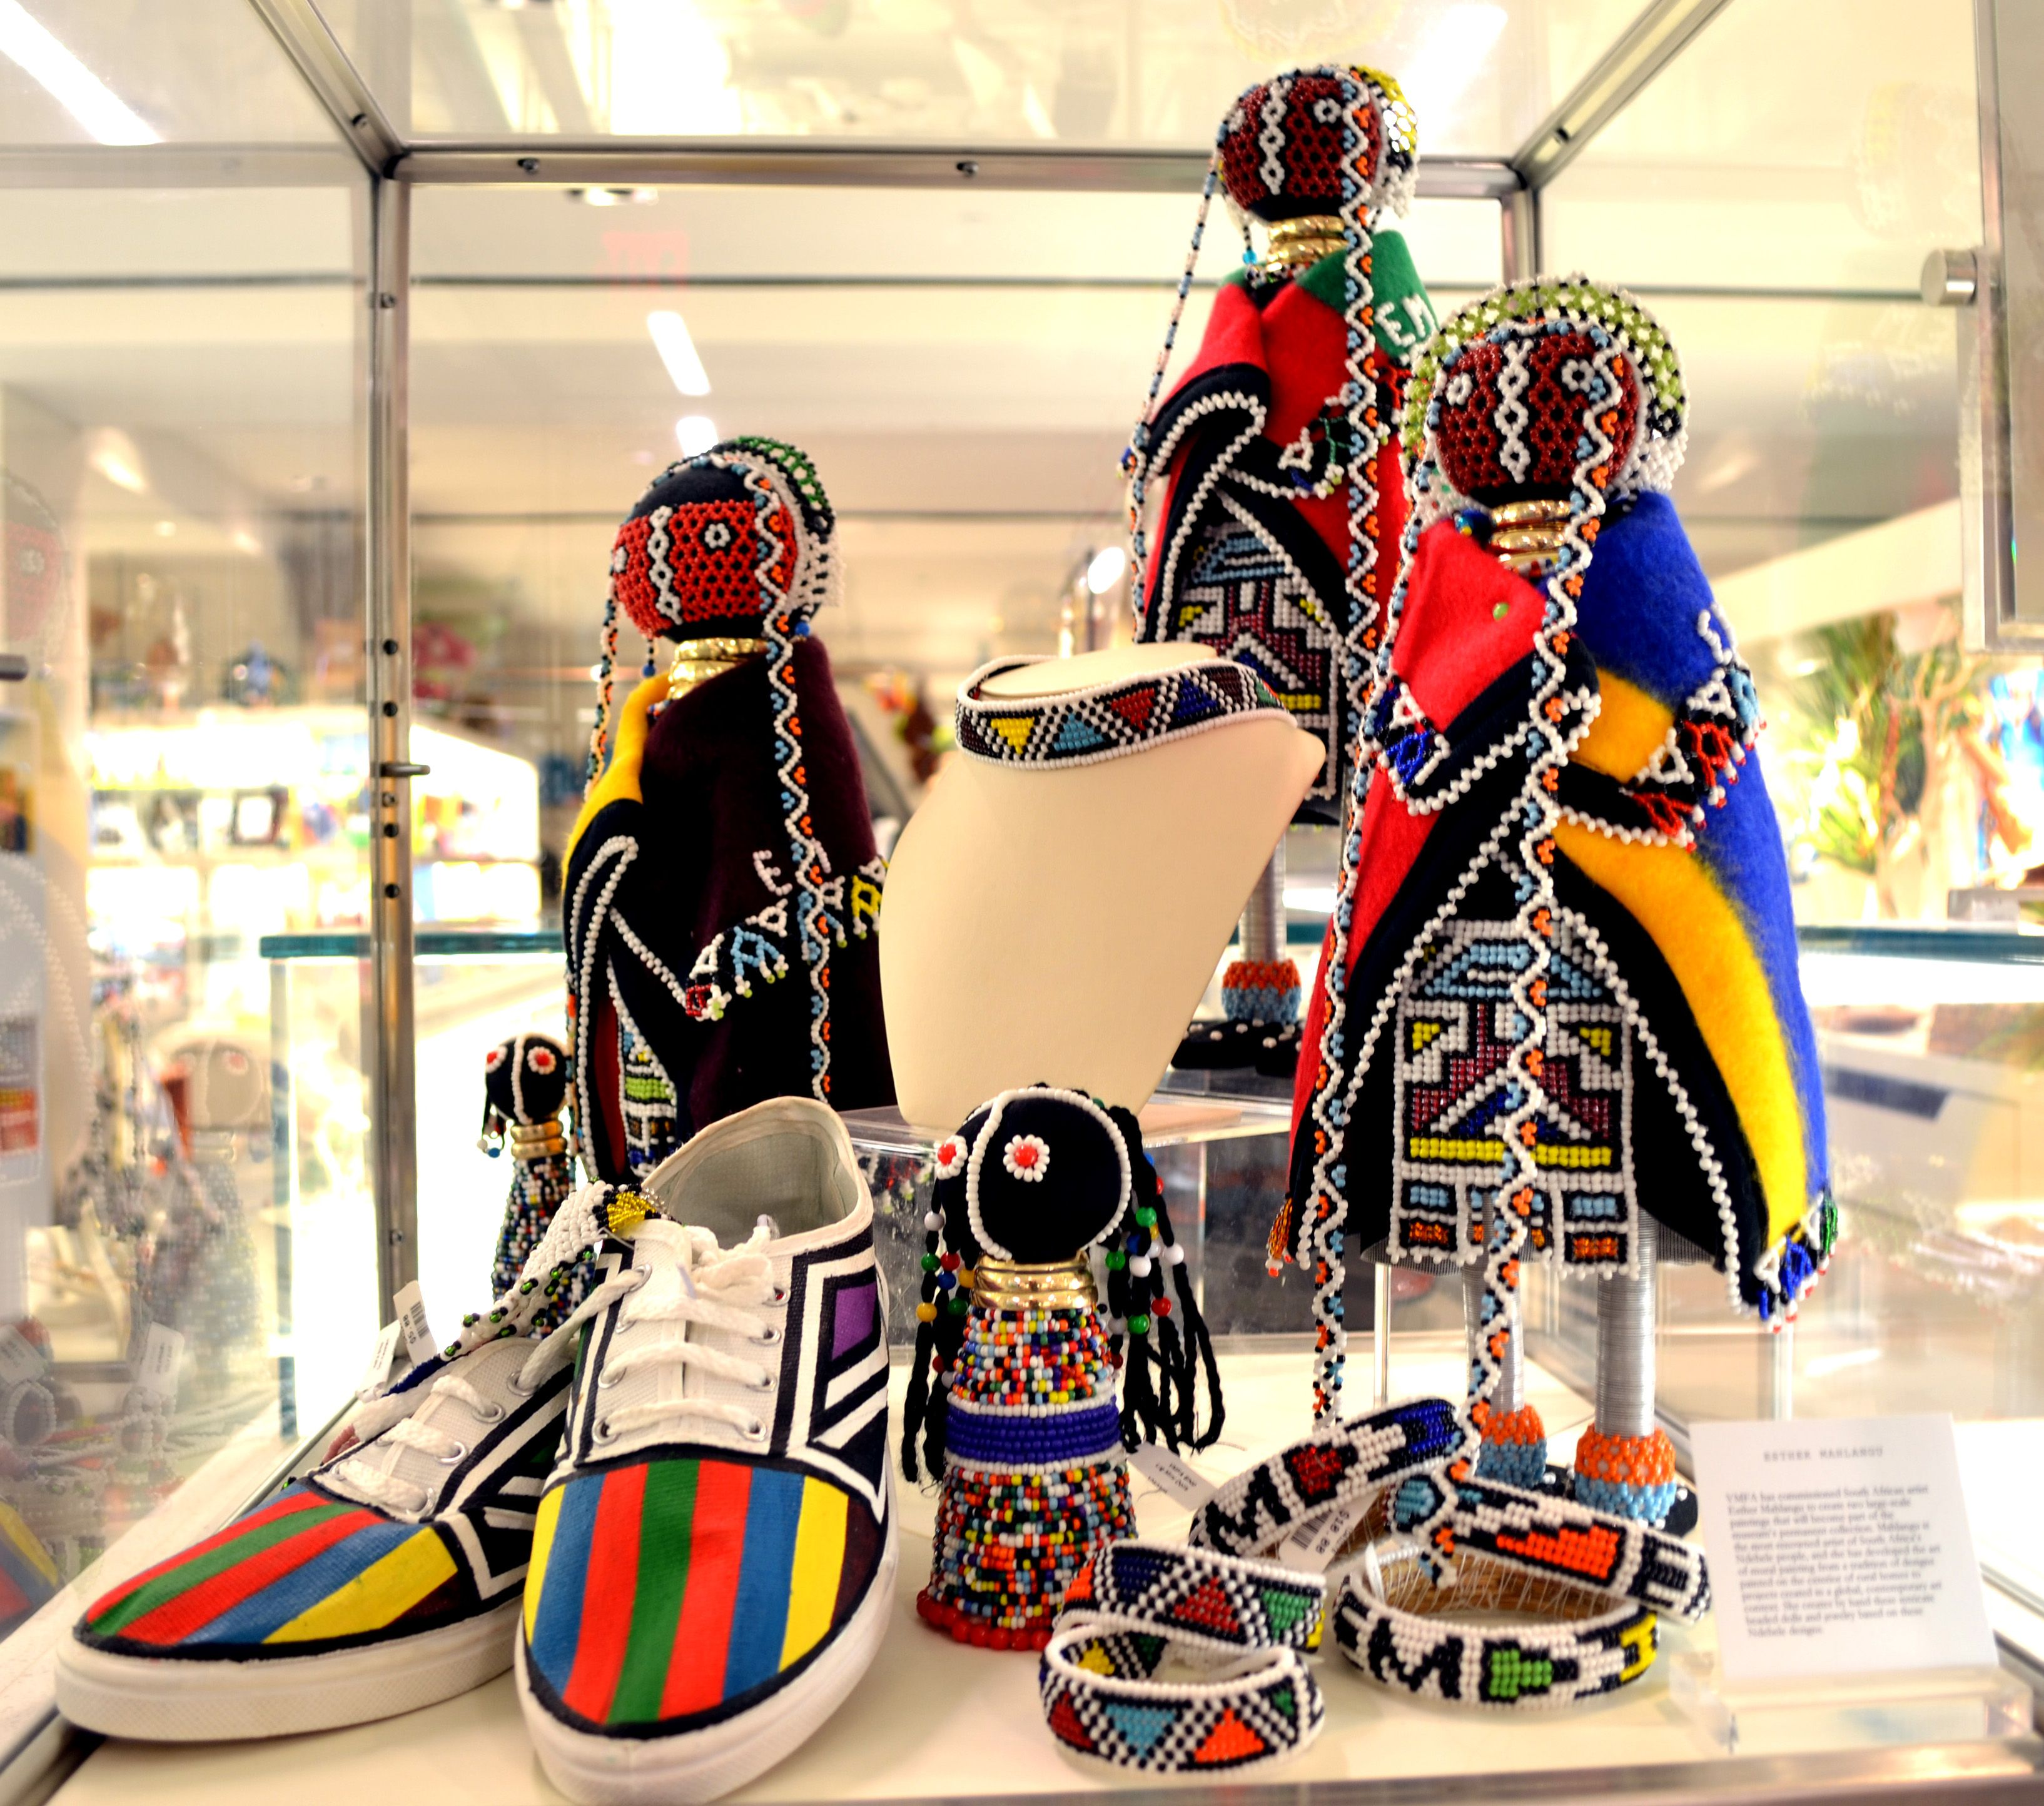 African Home Decor By 3rd Culture: Pin By Yonela Mfobo On NDEBELE DOLLS AND ADVERTISING